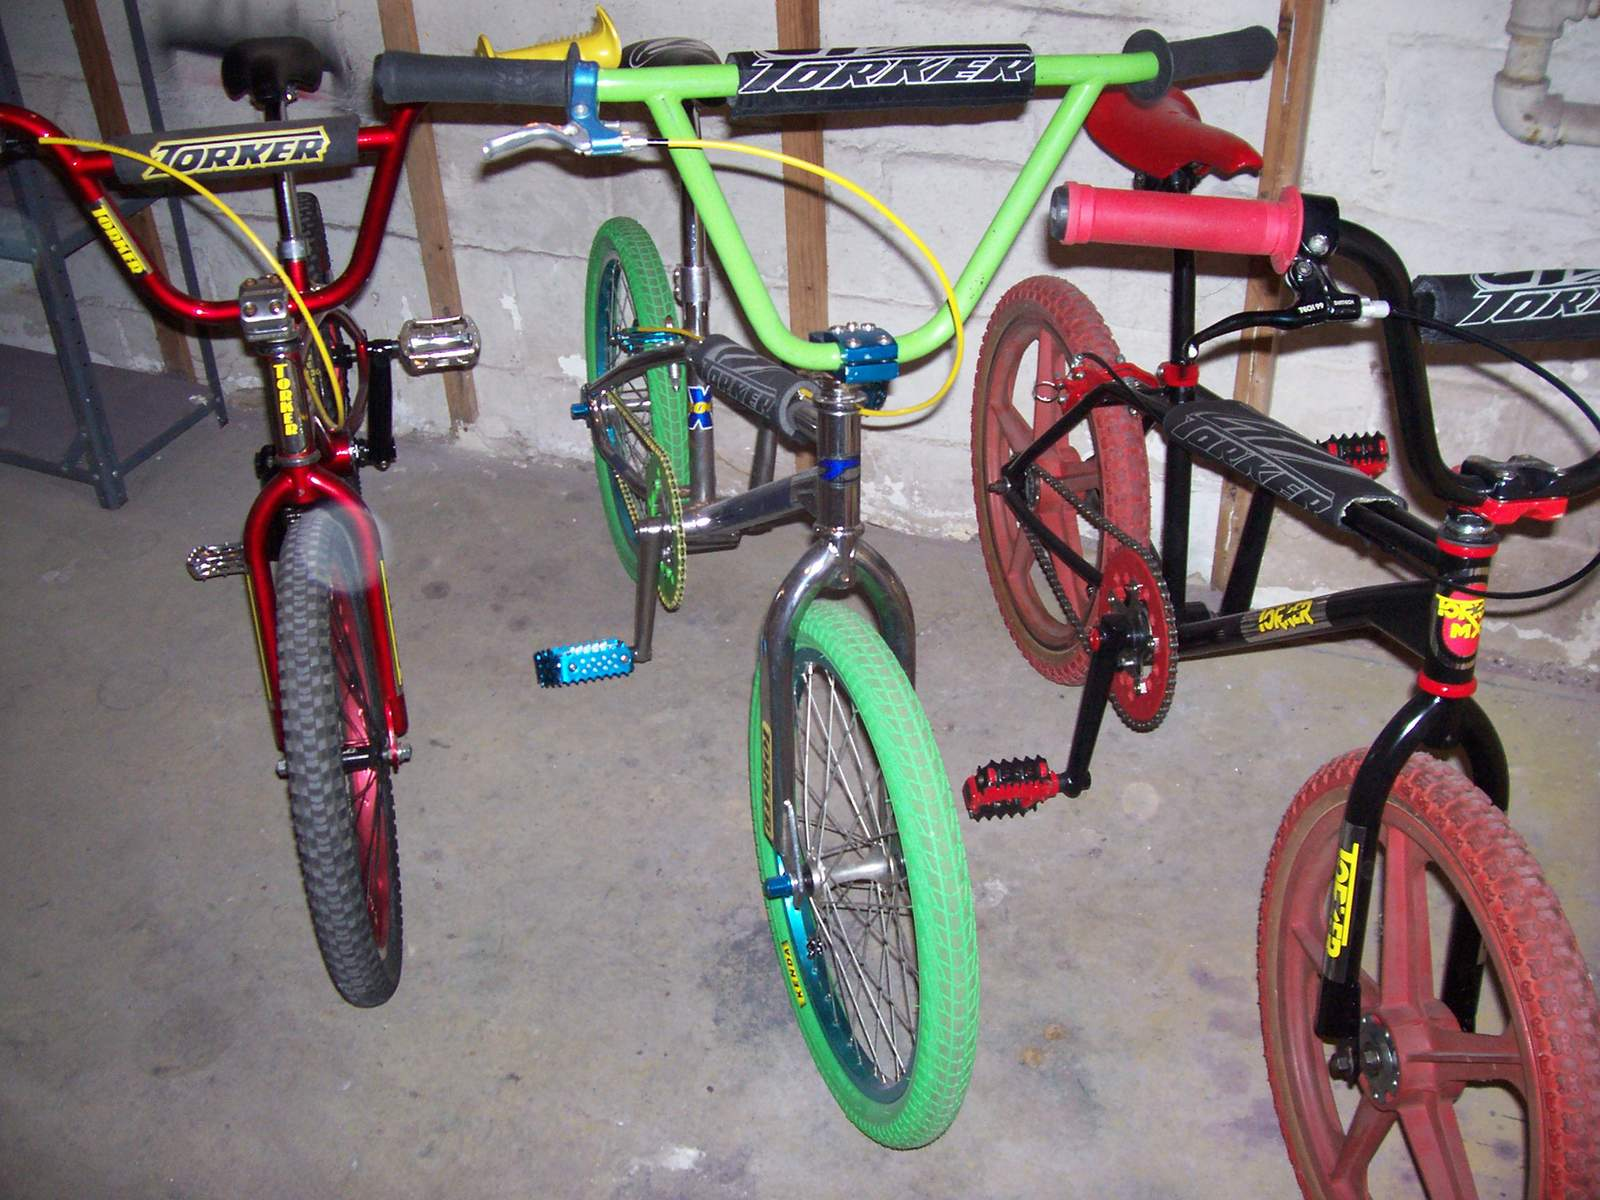 http://uploads.bmxmuseum.com/user-images/61851/100_800758d663b53d.jpg